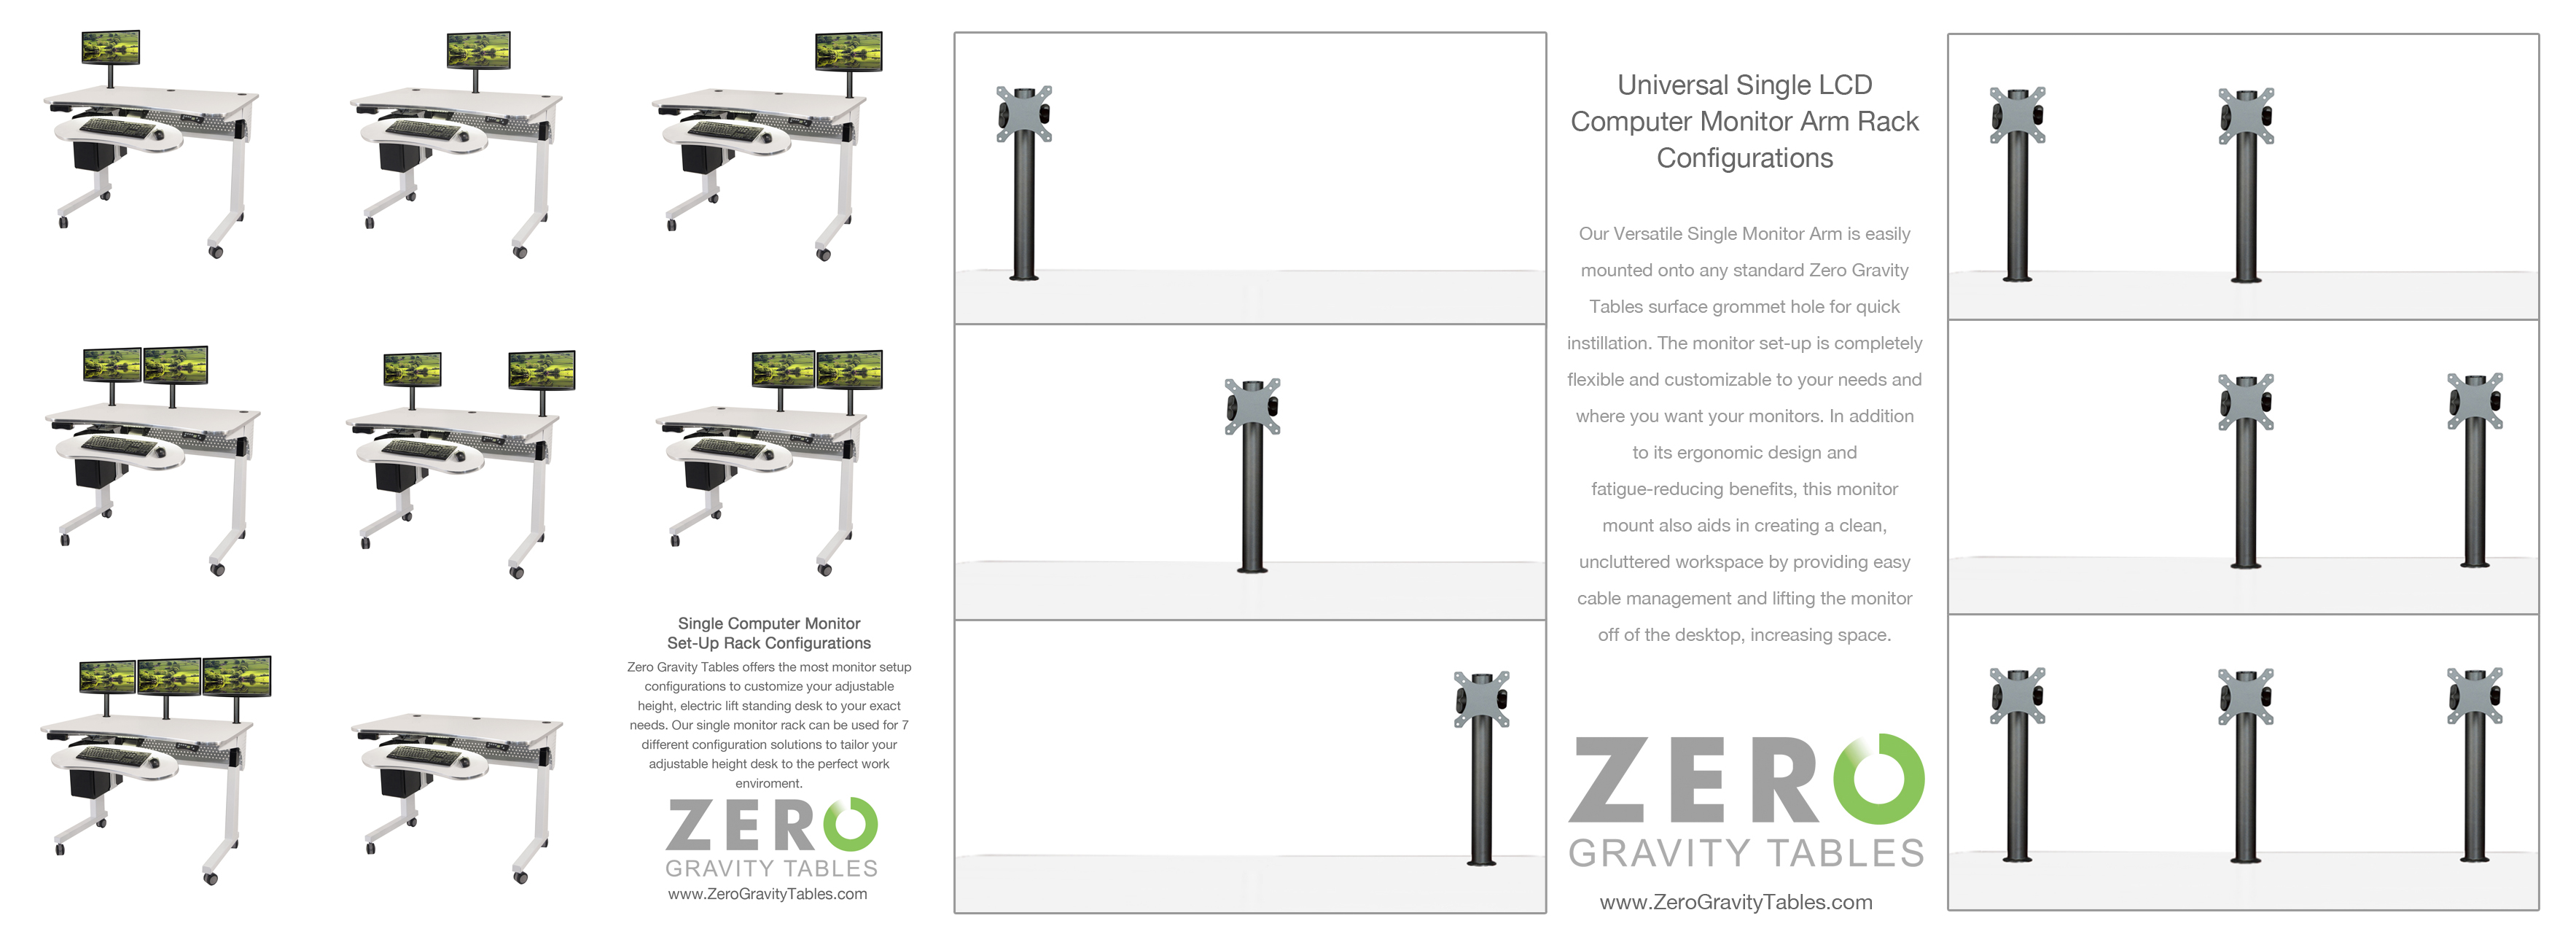 zg-computer-screen-set-up-multi-monitor-configurations-stand-sit-height-adjustable-electric-lift-standing-desk-grommet-monitor-racks.jpg